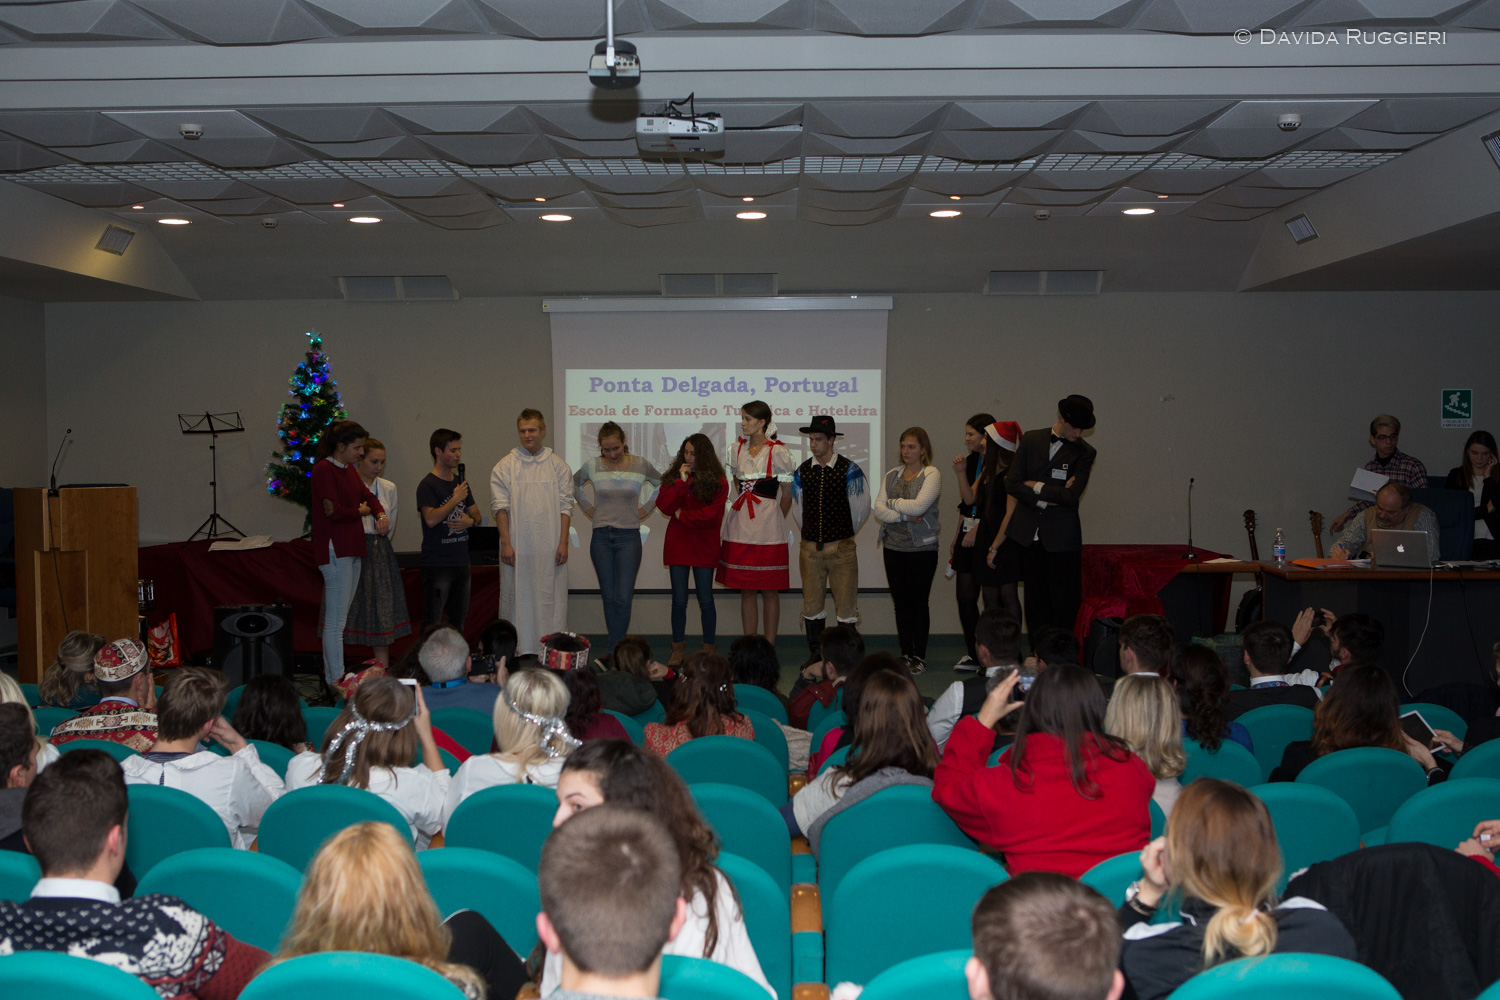 Christmas in Europe, spettacolo all'auditorium